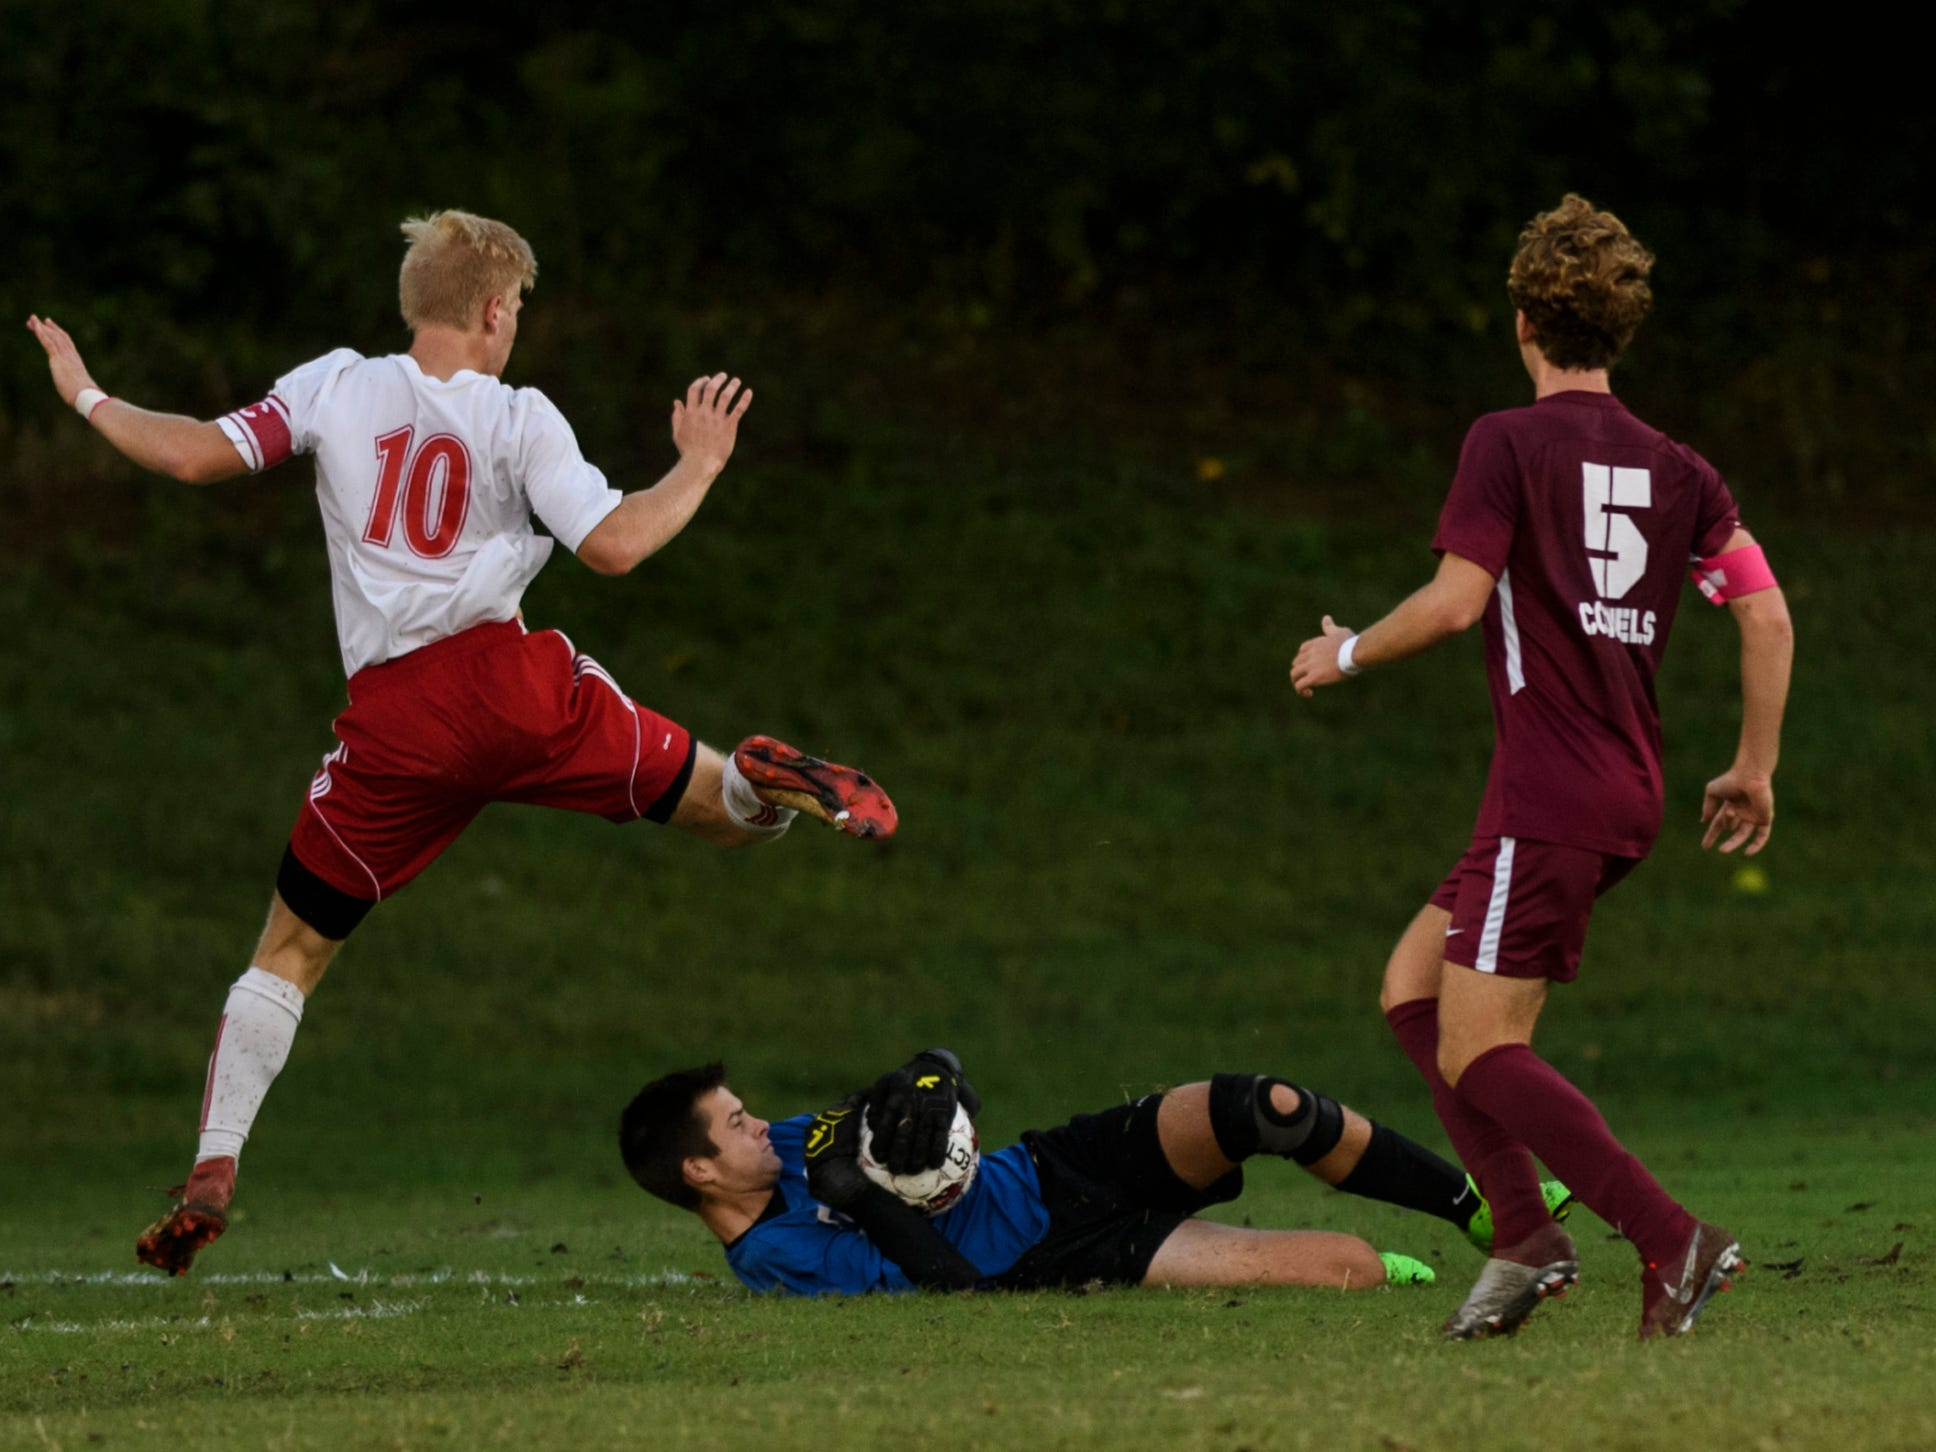 Henderson County's Adam Beickman (0) stops Daviess County's Brian Winkler (10) from advancing to the net during the match at Colonel Field in Henderson, Ky., Thursday, Sept. 27, 2018. The Panthers defeated the Colonels 5-3.